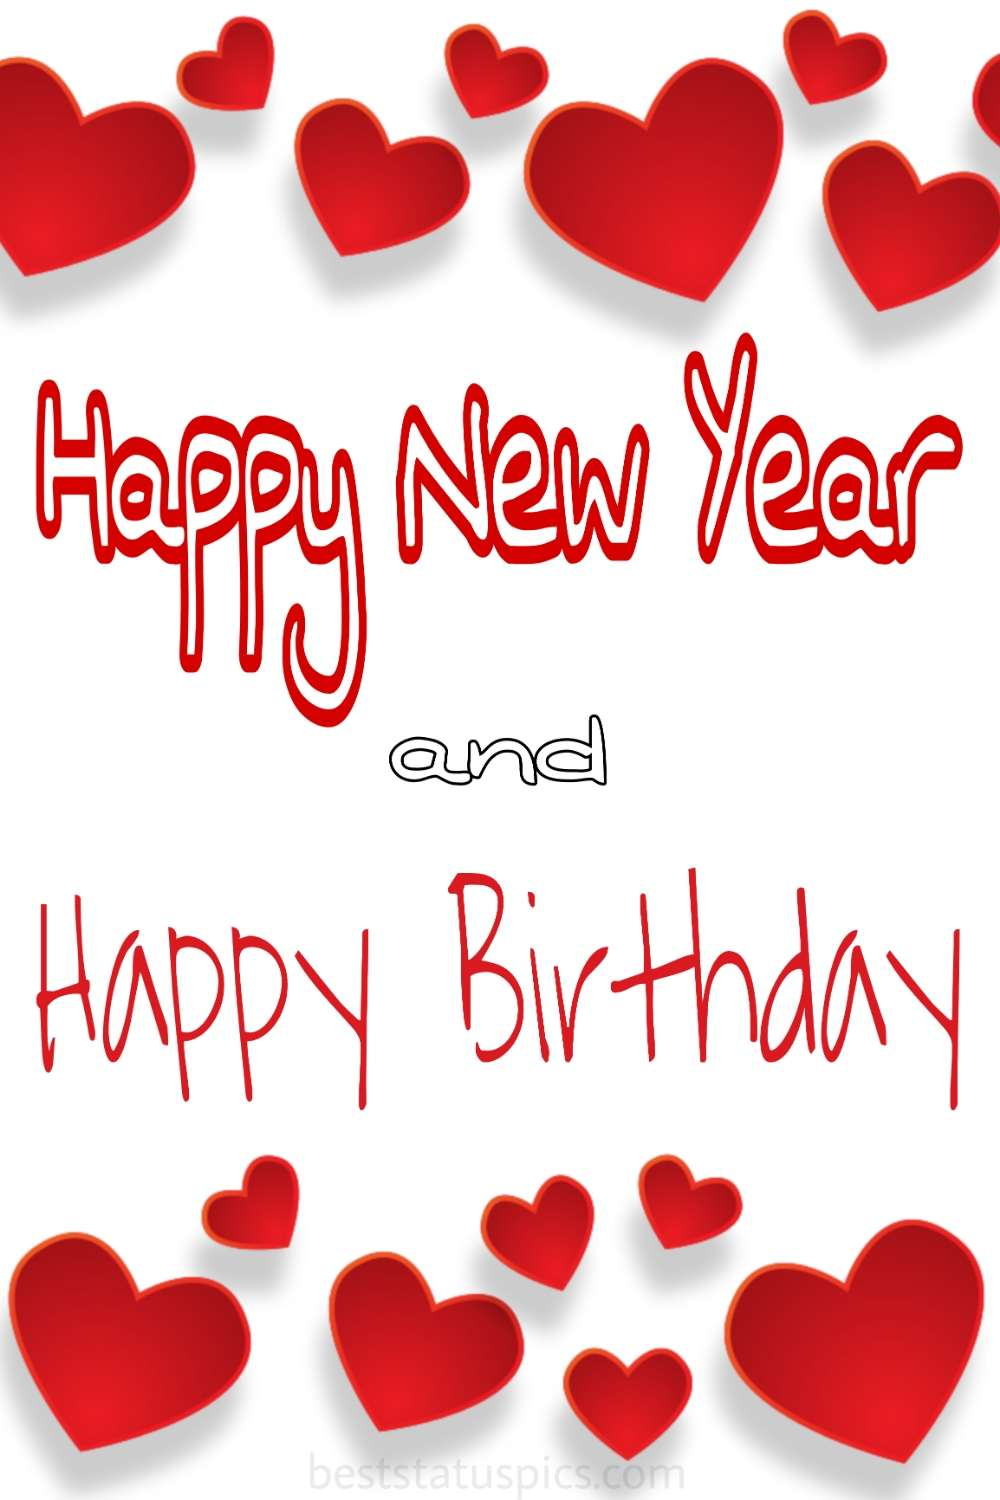 Happy new year 2022 and Happy Birthday greeting cards with love and heart for girlfriend, boyfriend, husband, wife and lover